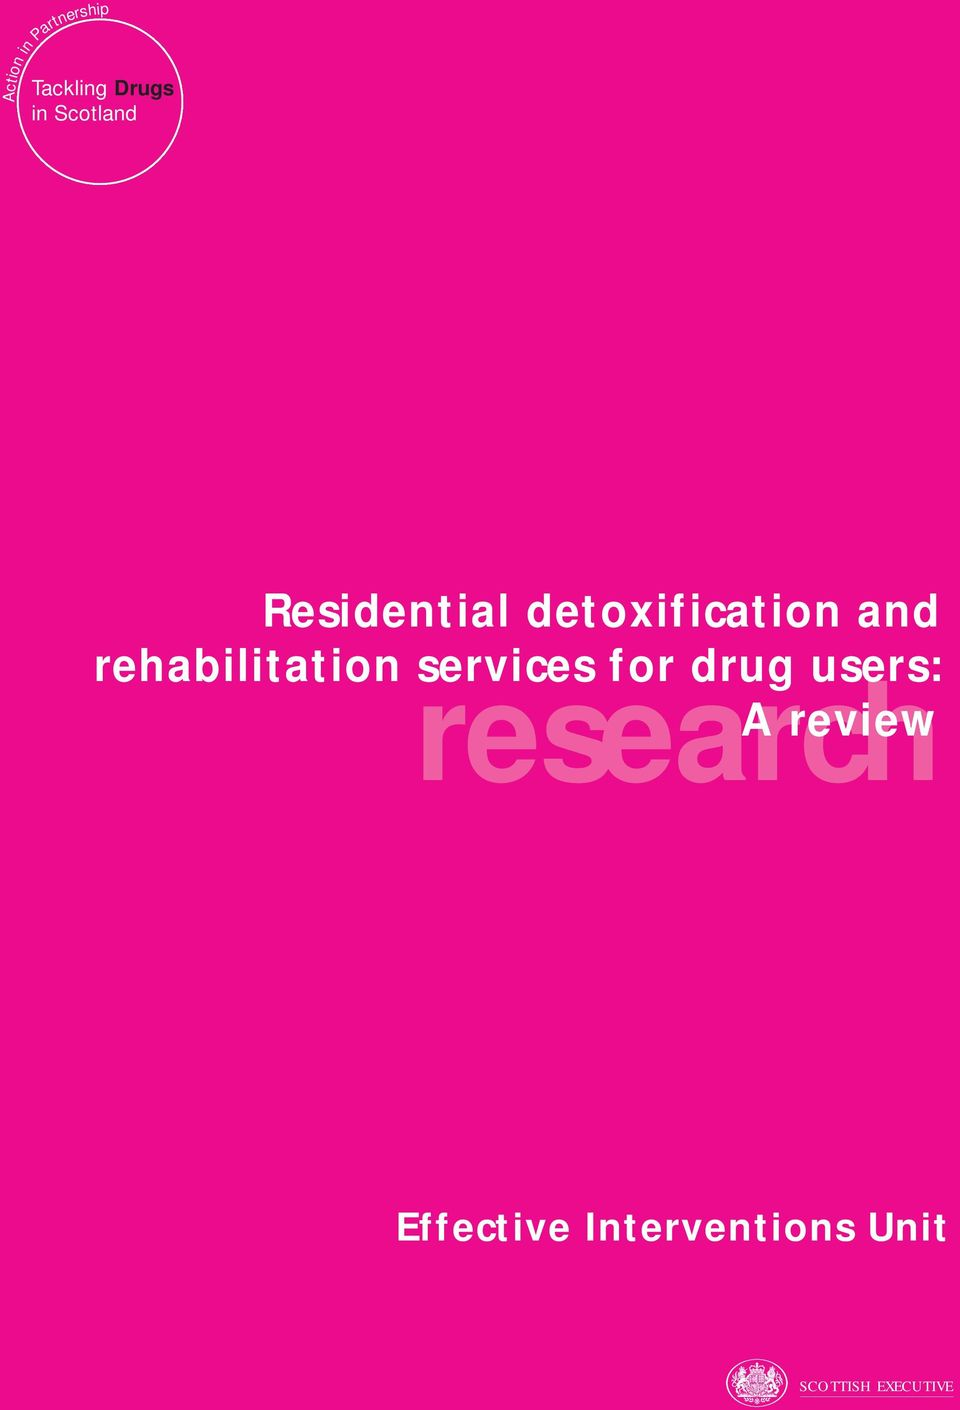 rehabilitation services for drug users: